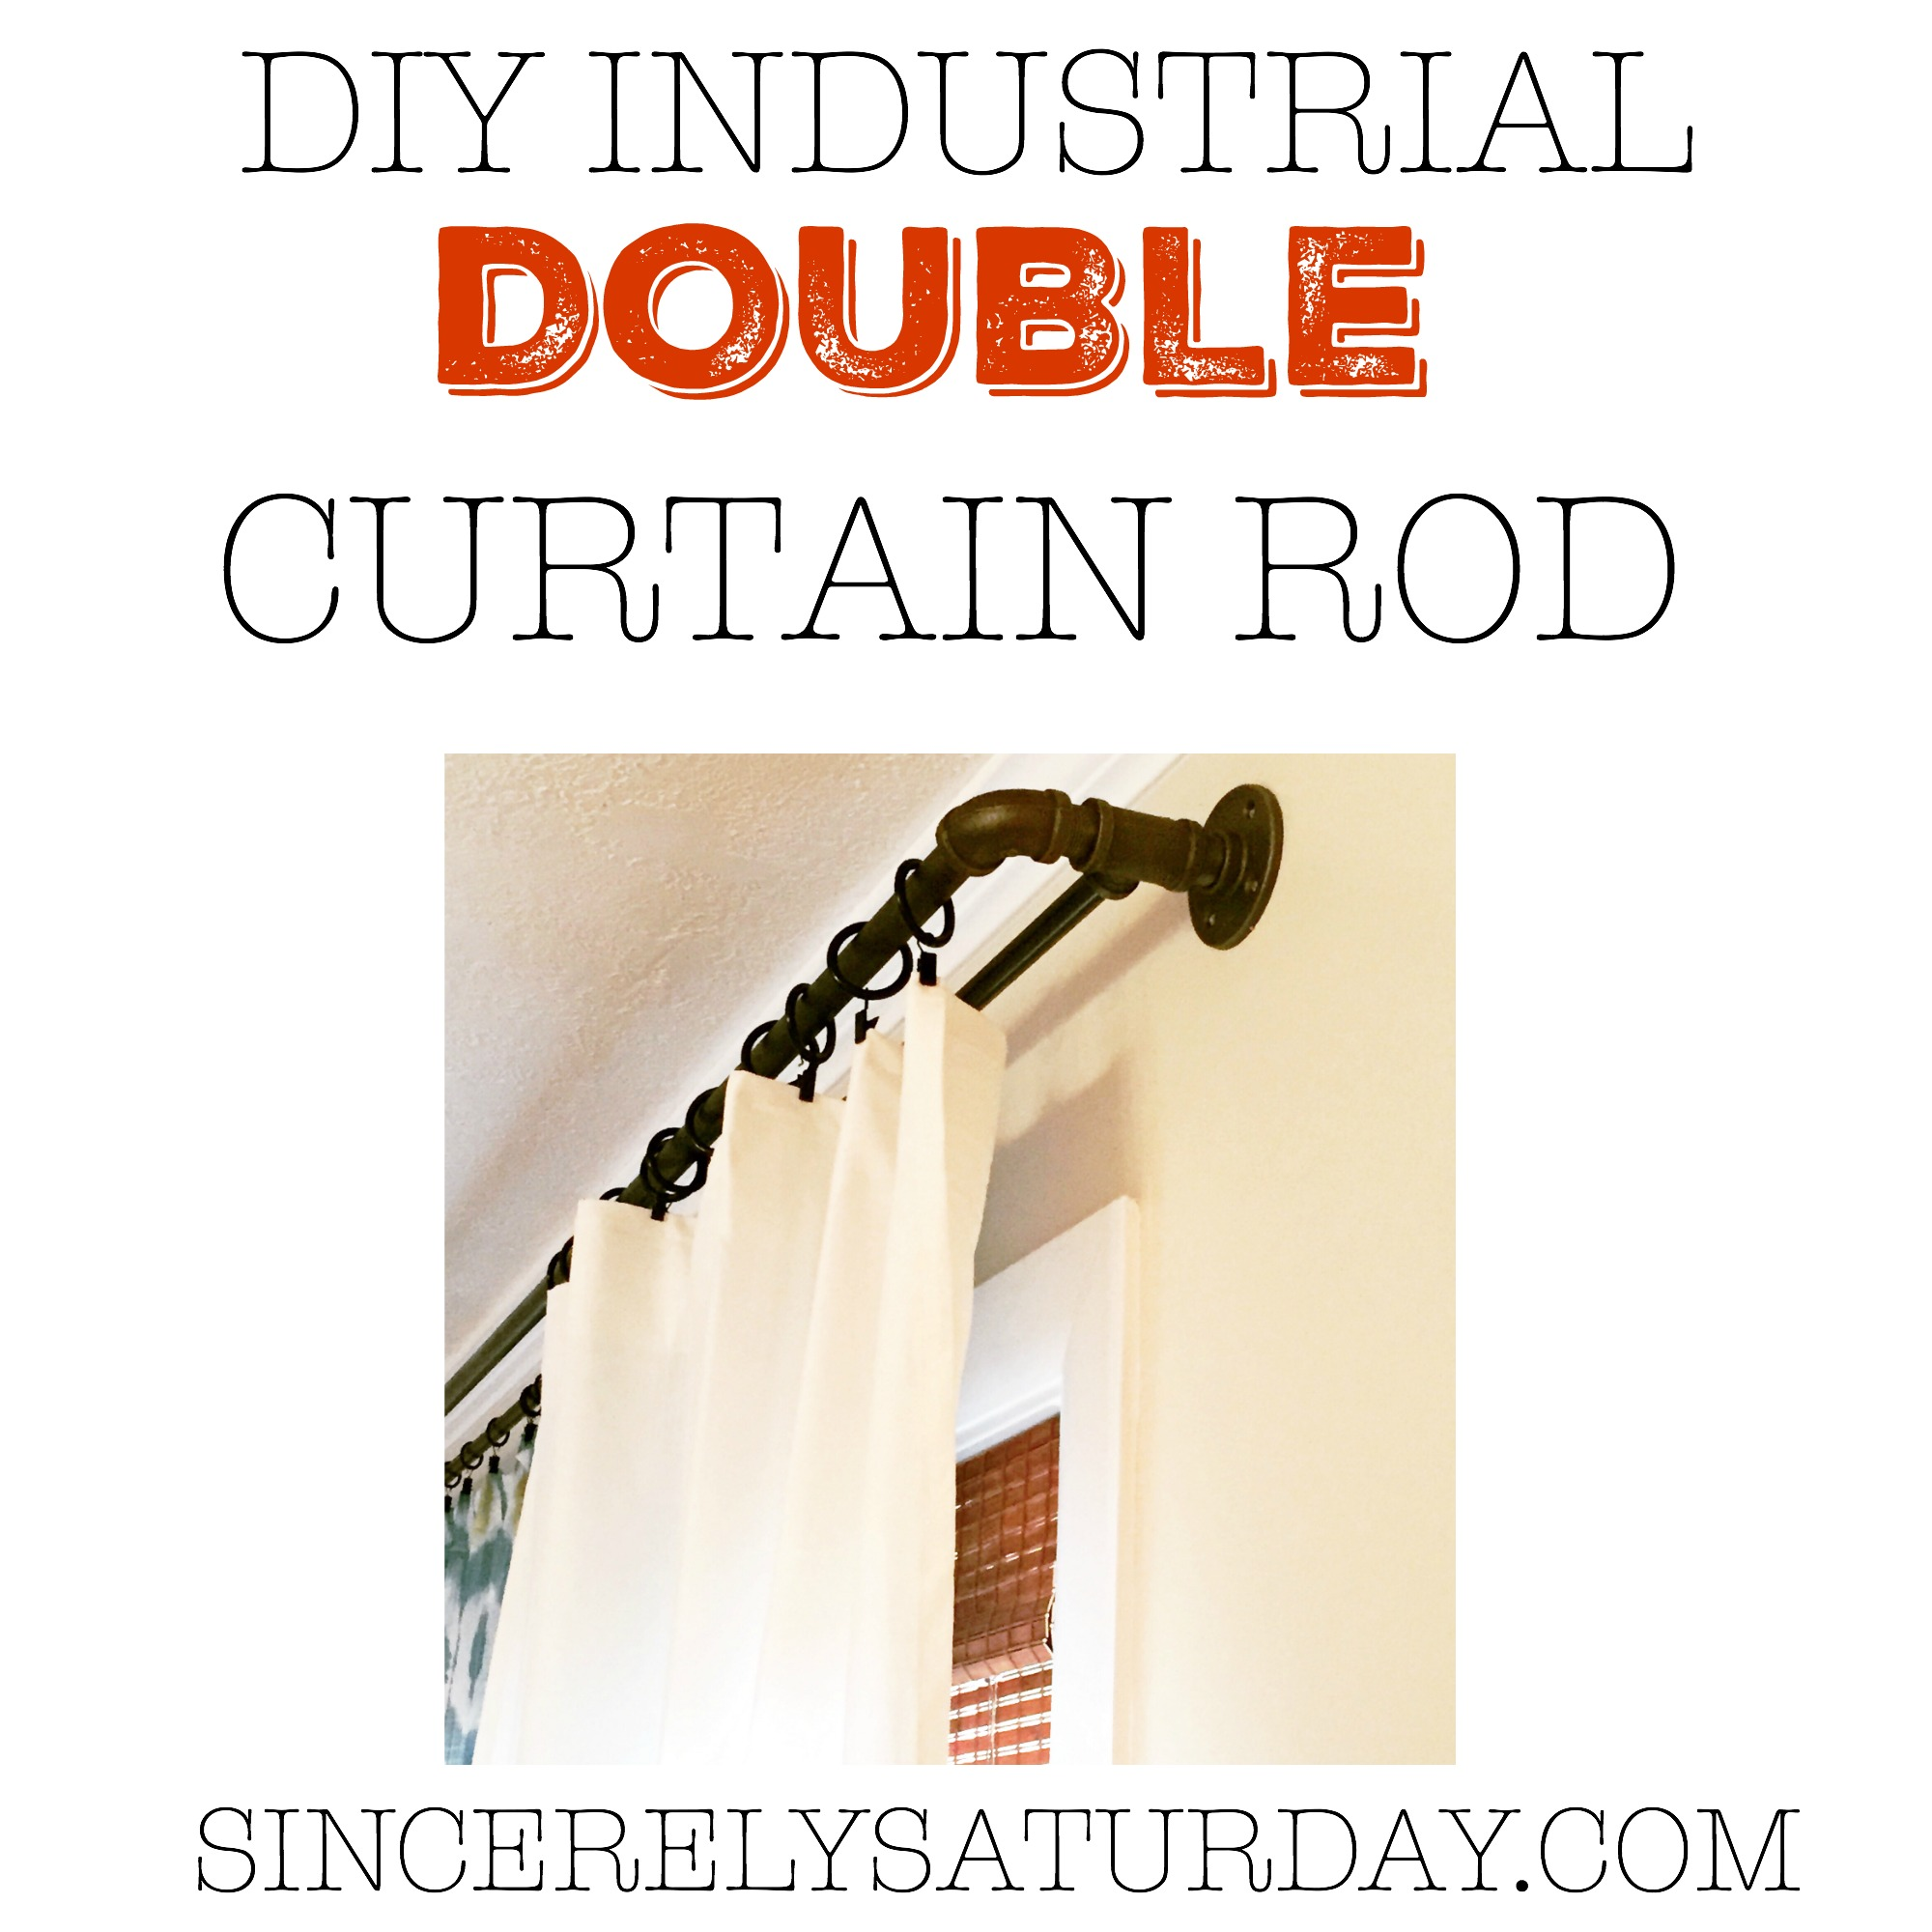 Diy Industrial Double Conduit Curtain Rod Sincerely Saturday